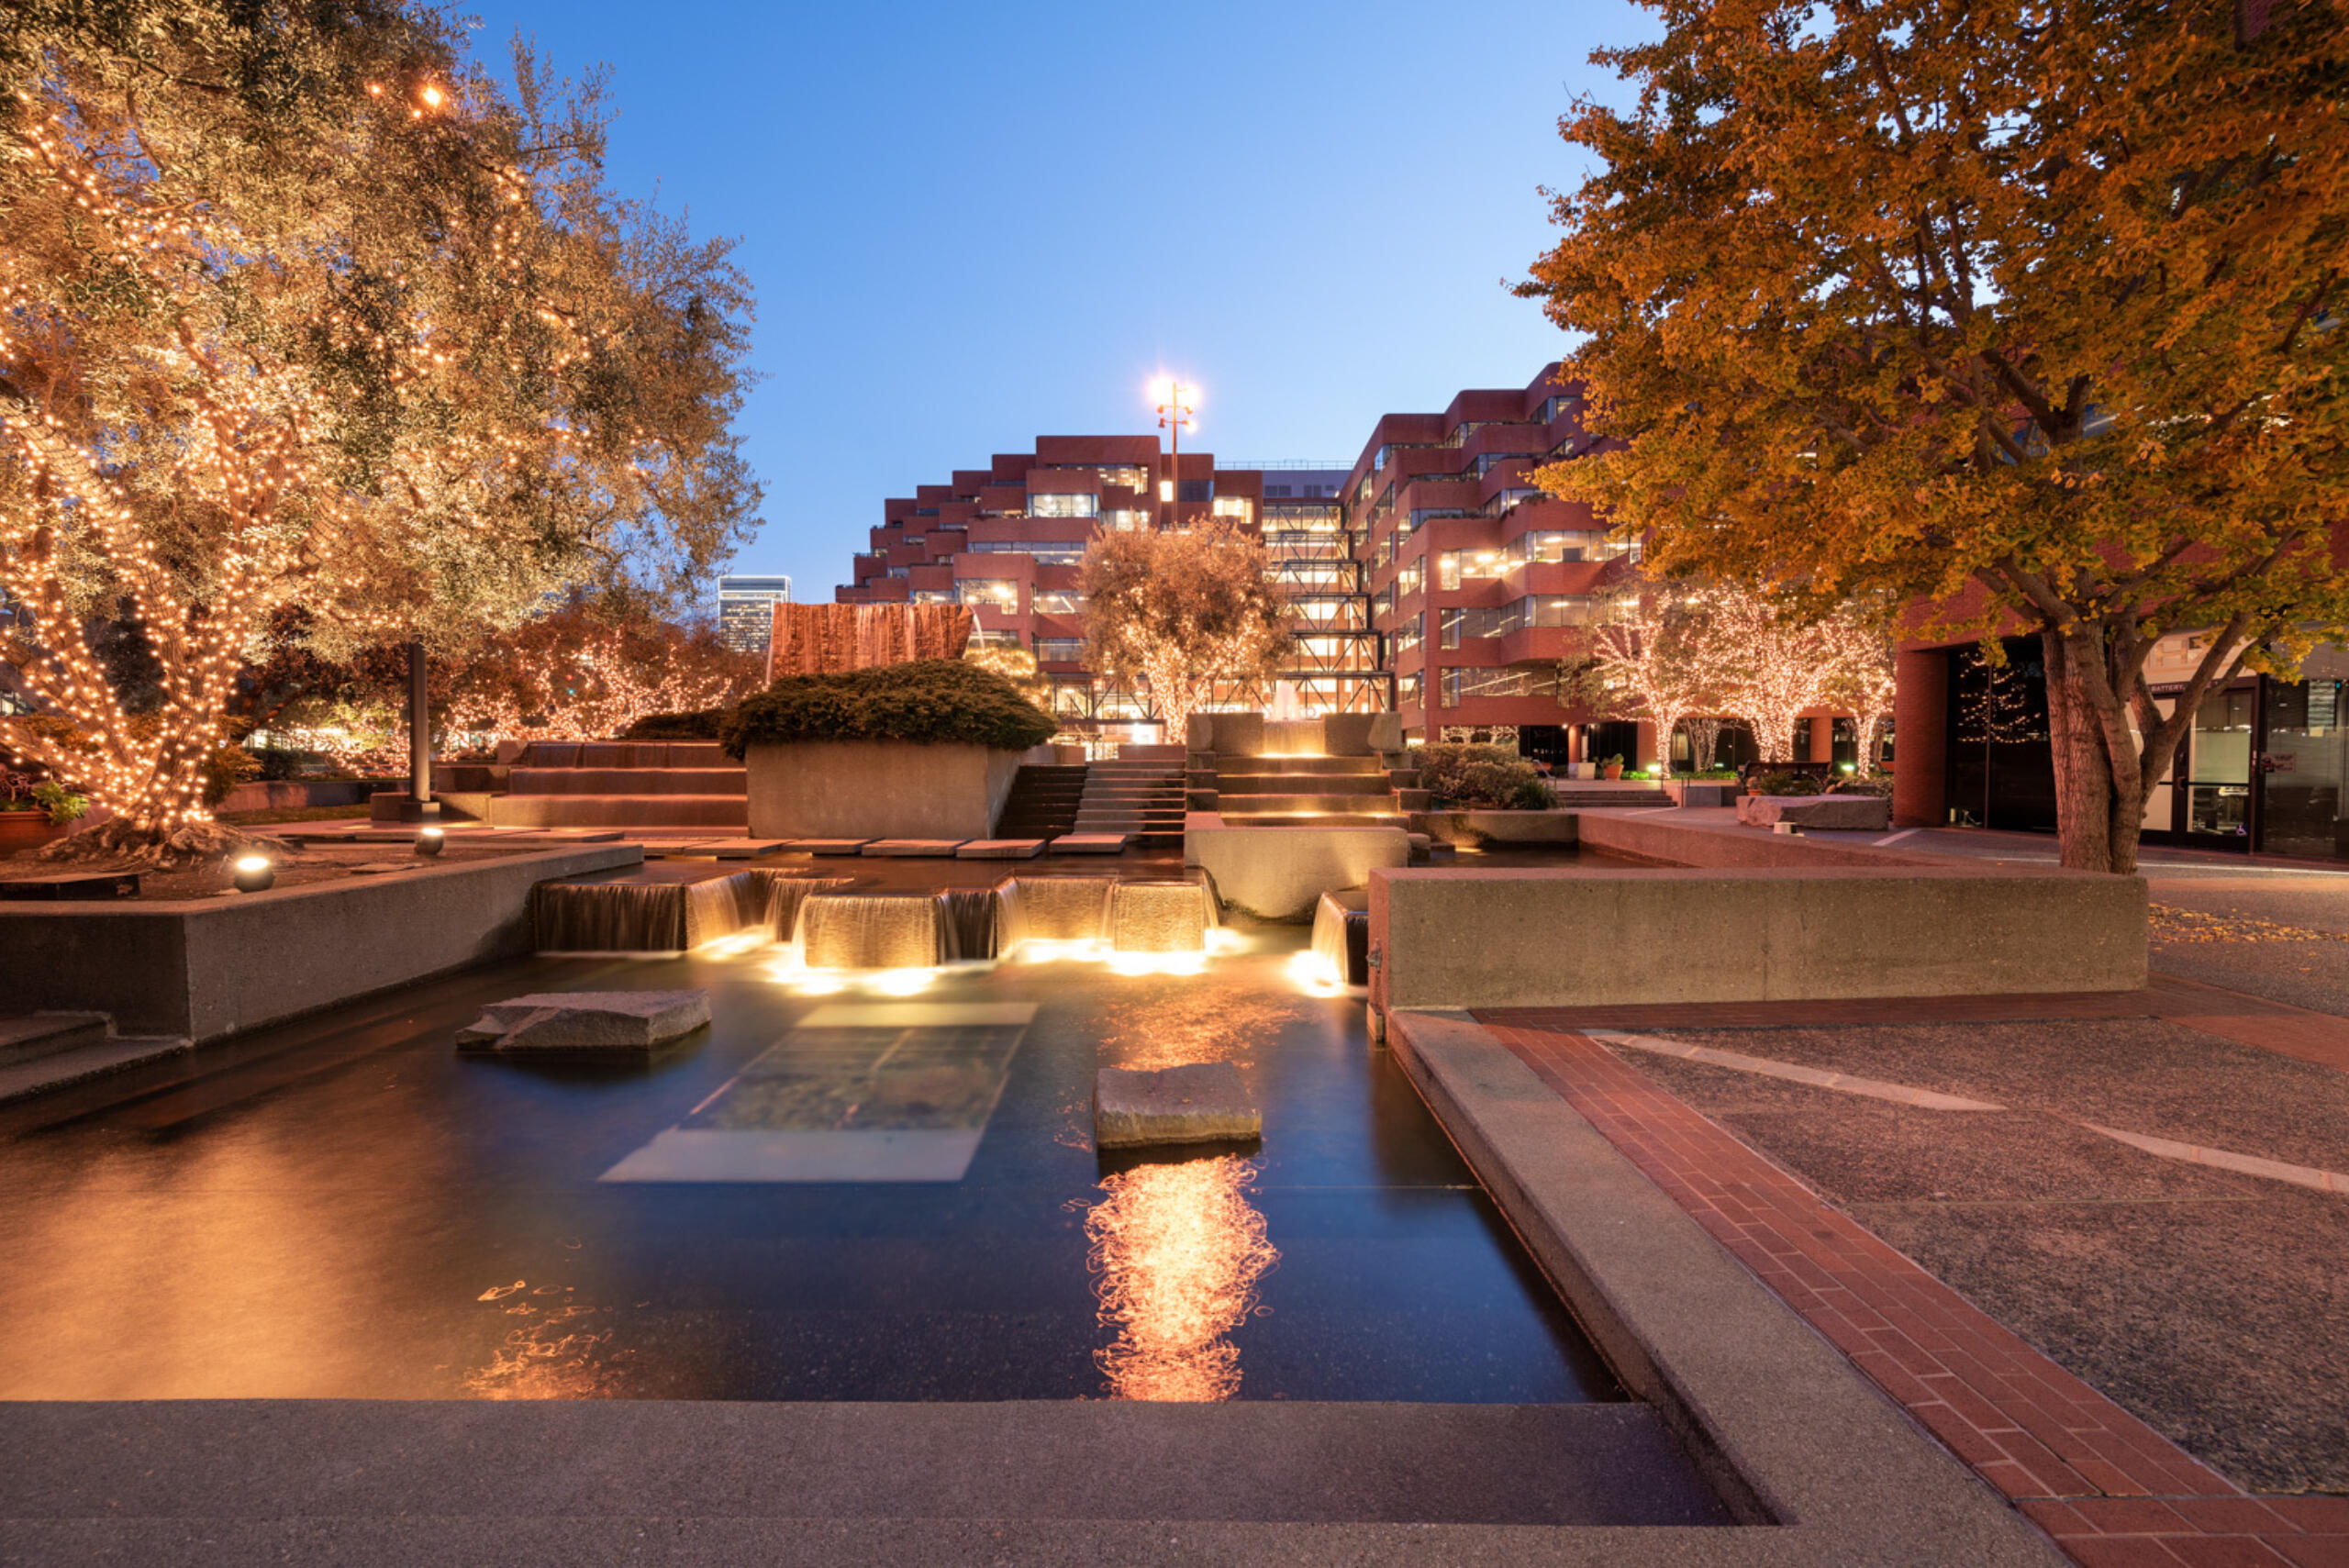 Levis Plaza campus at dusk with reflecting pond in foreground and building in background